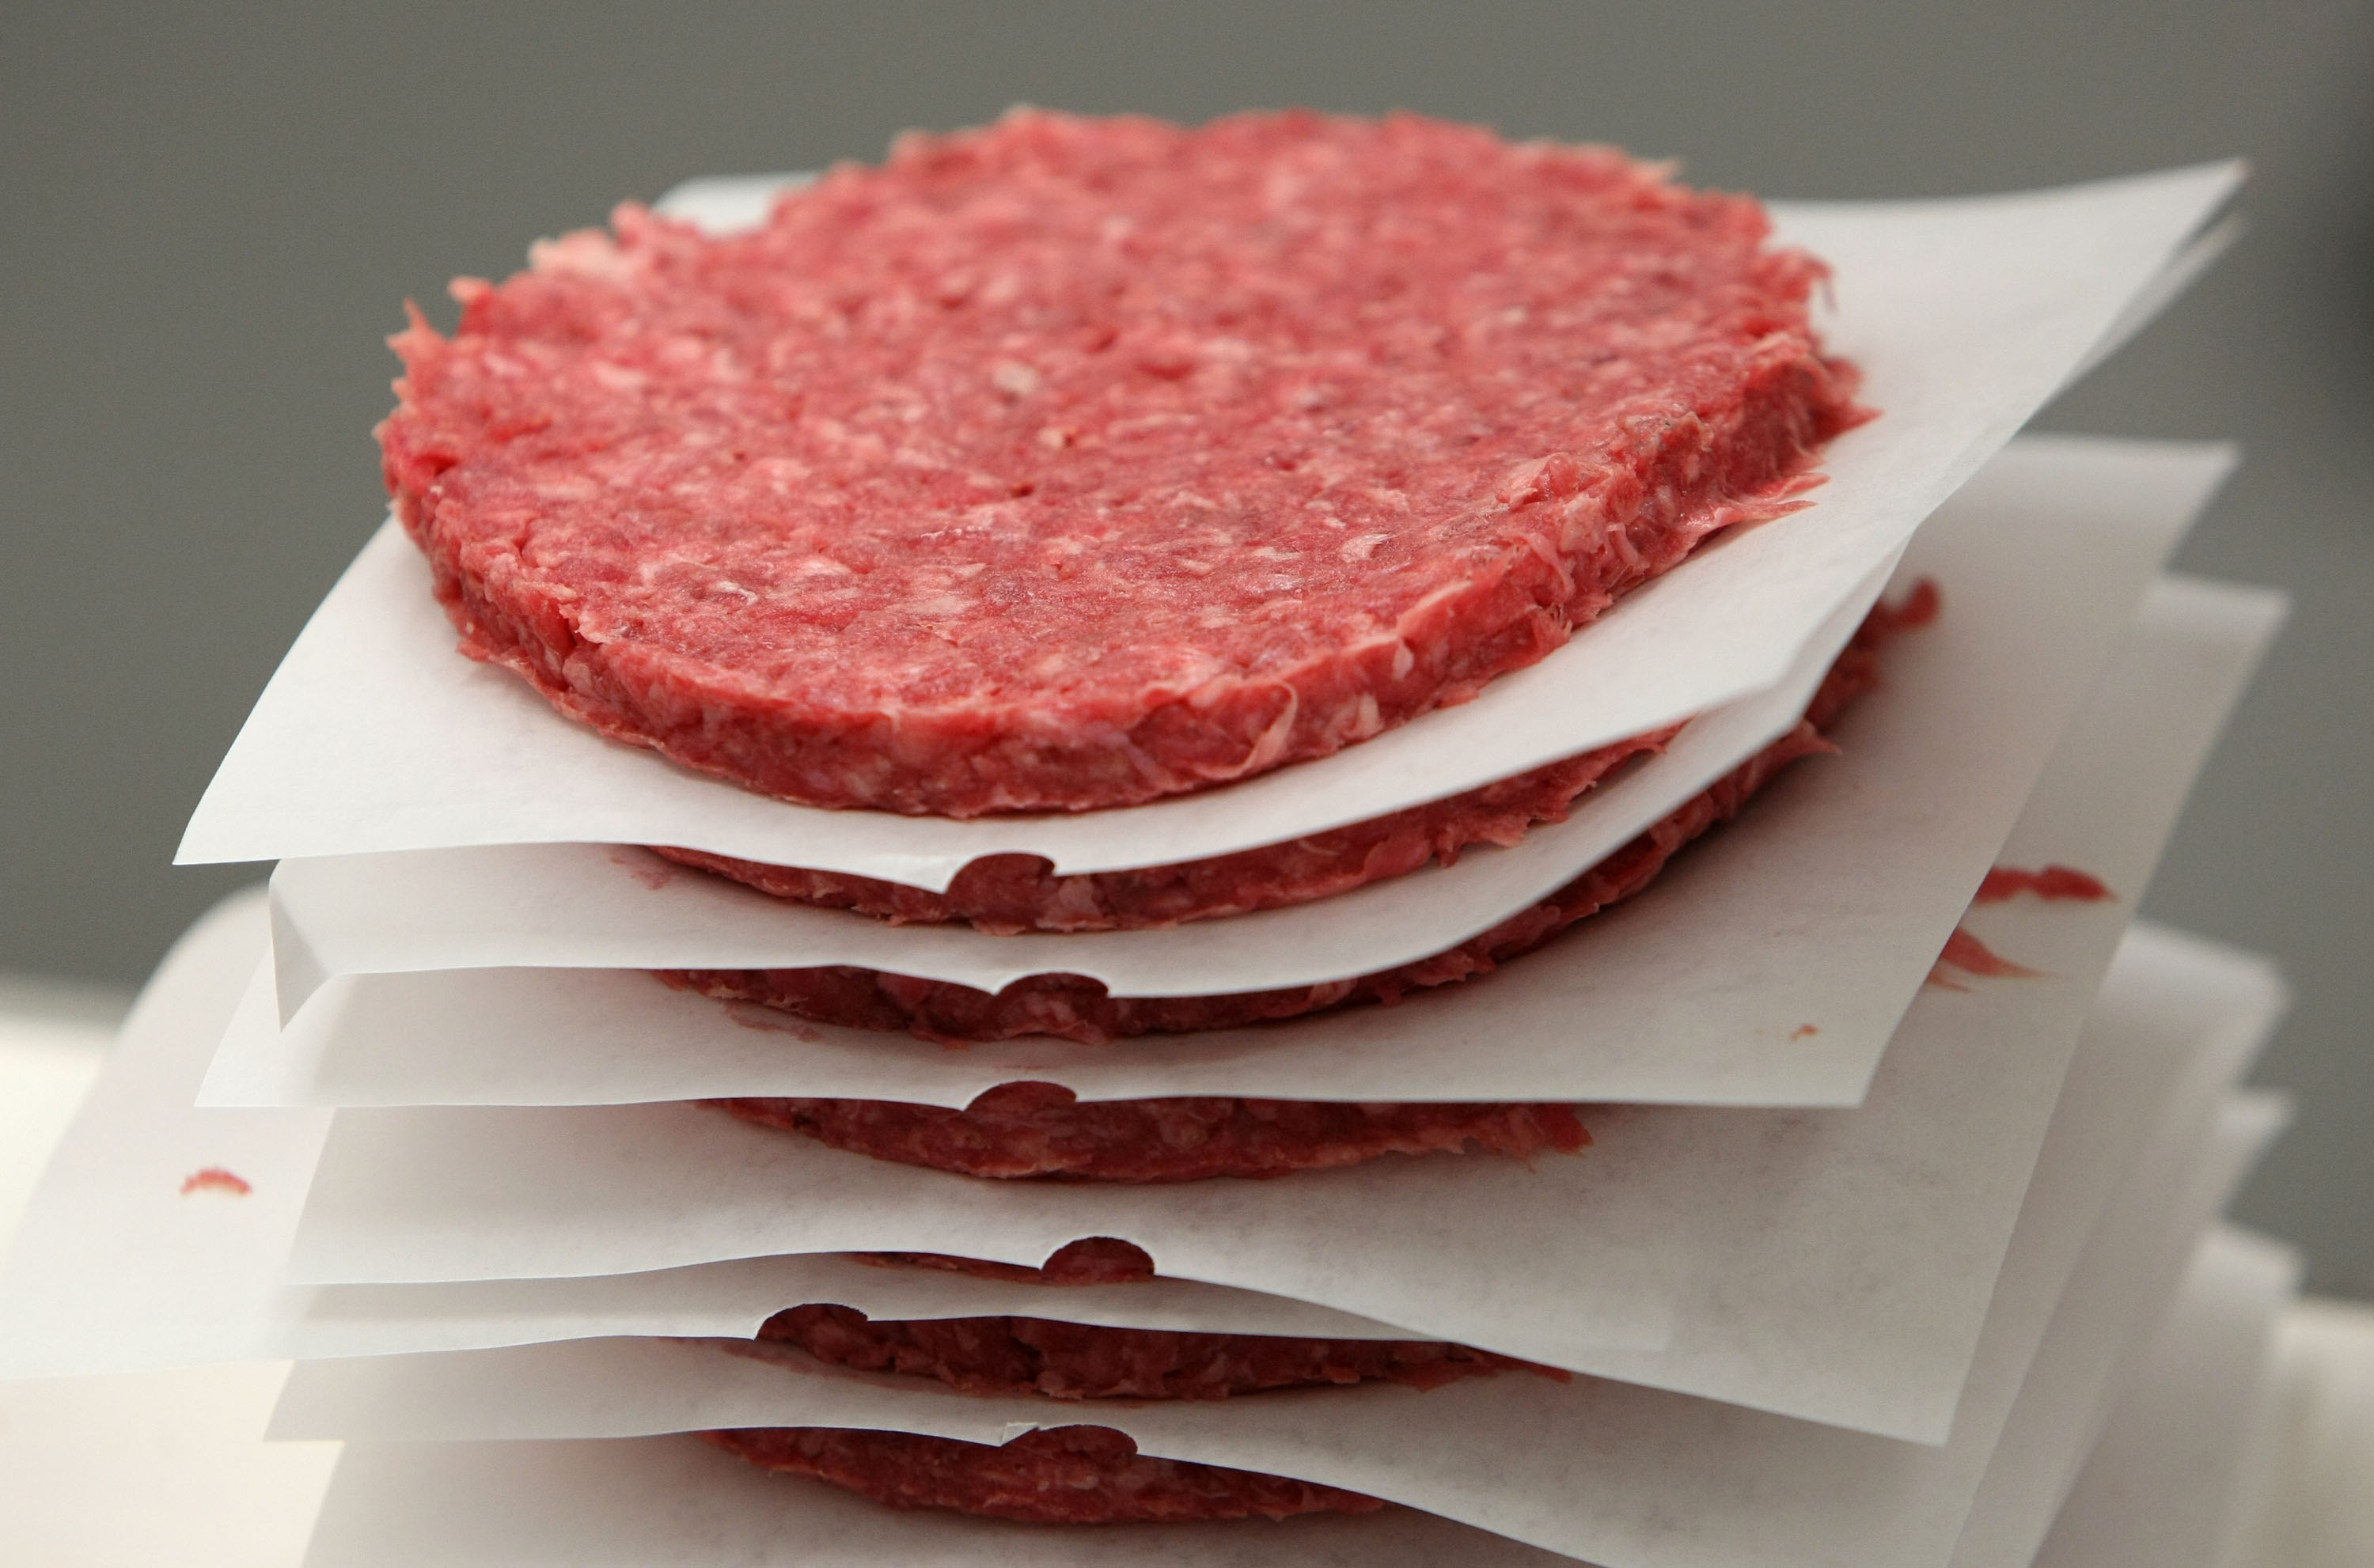 Horse meat found in beef burgers: Irish factory suspends all production